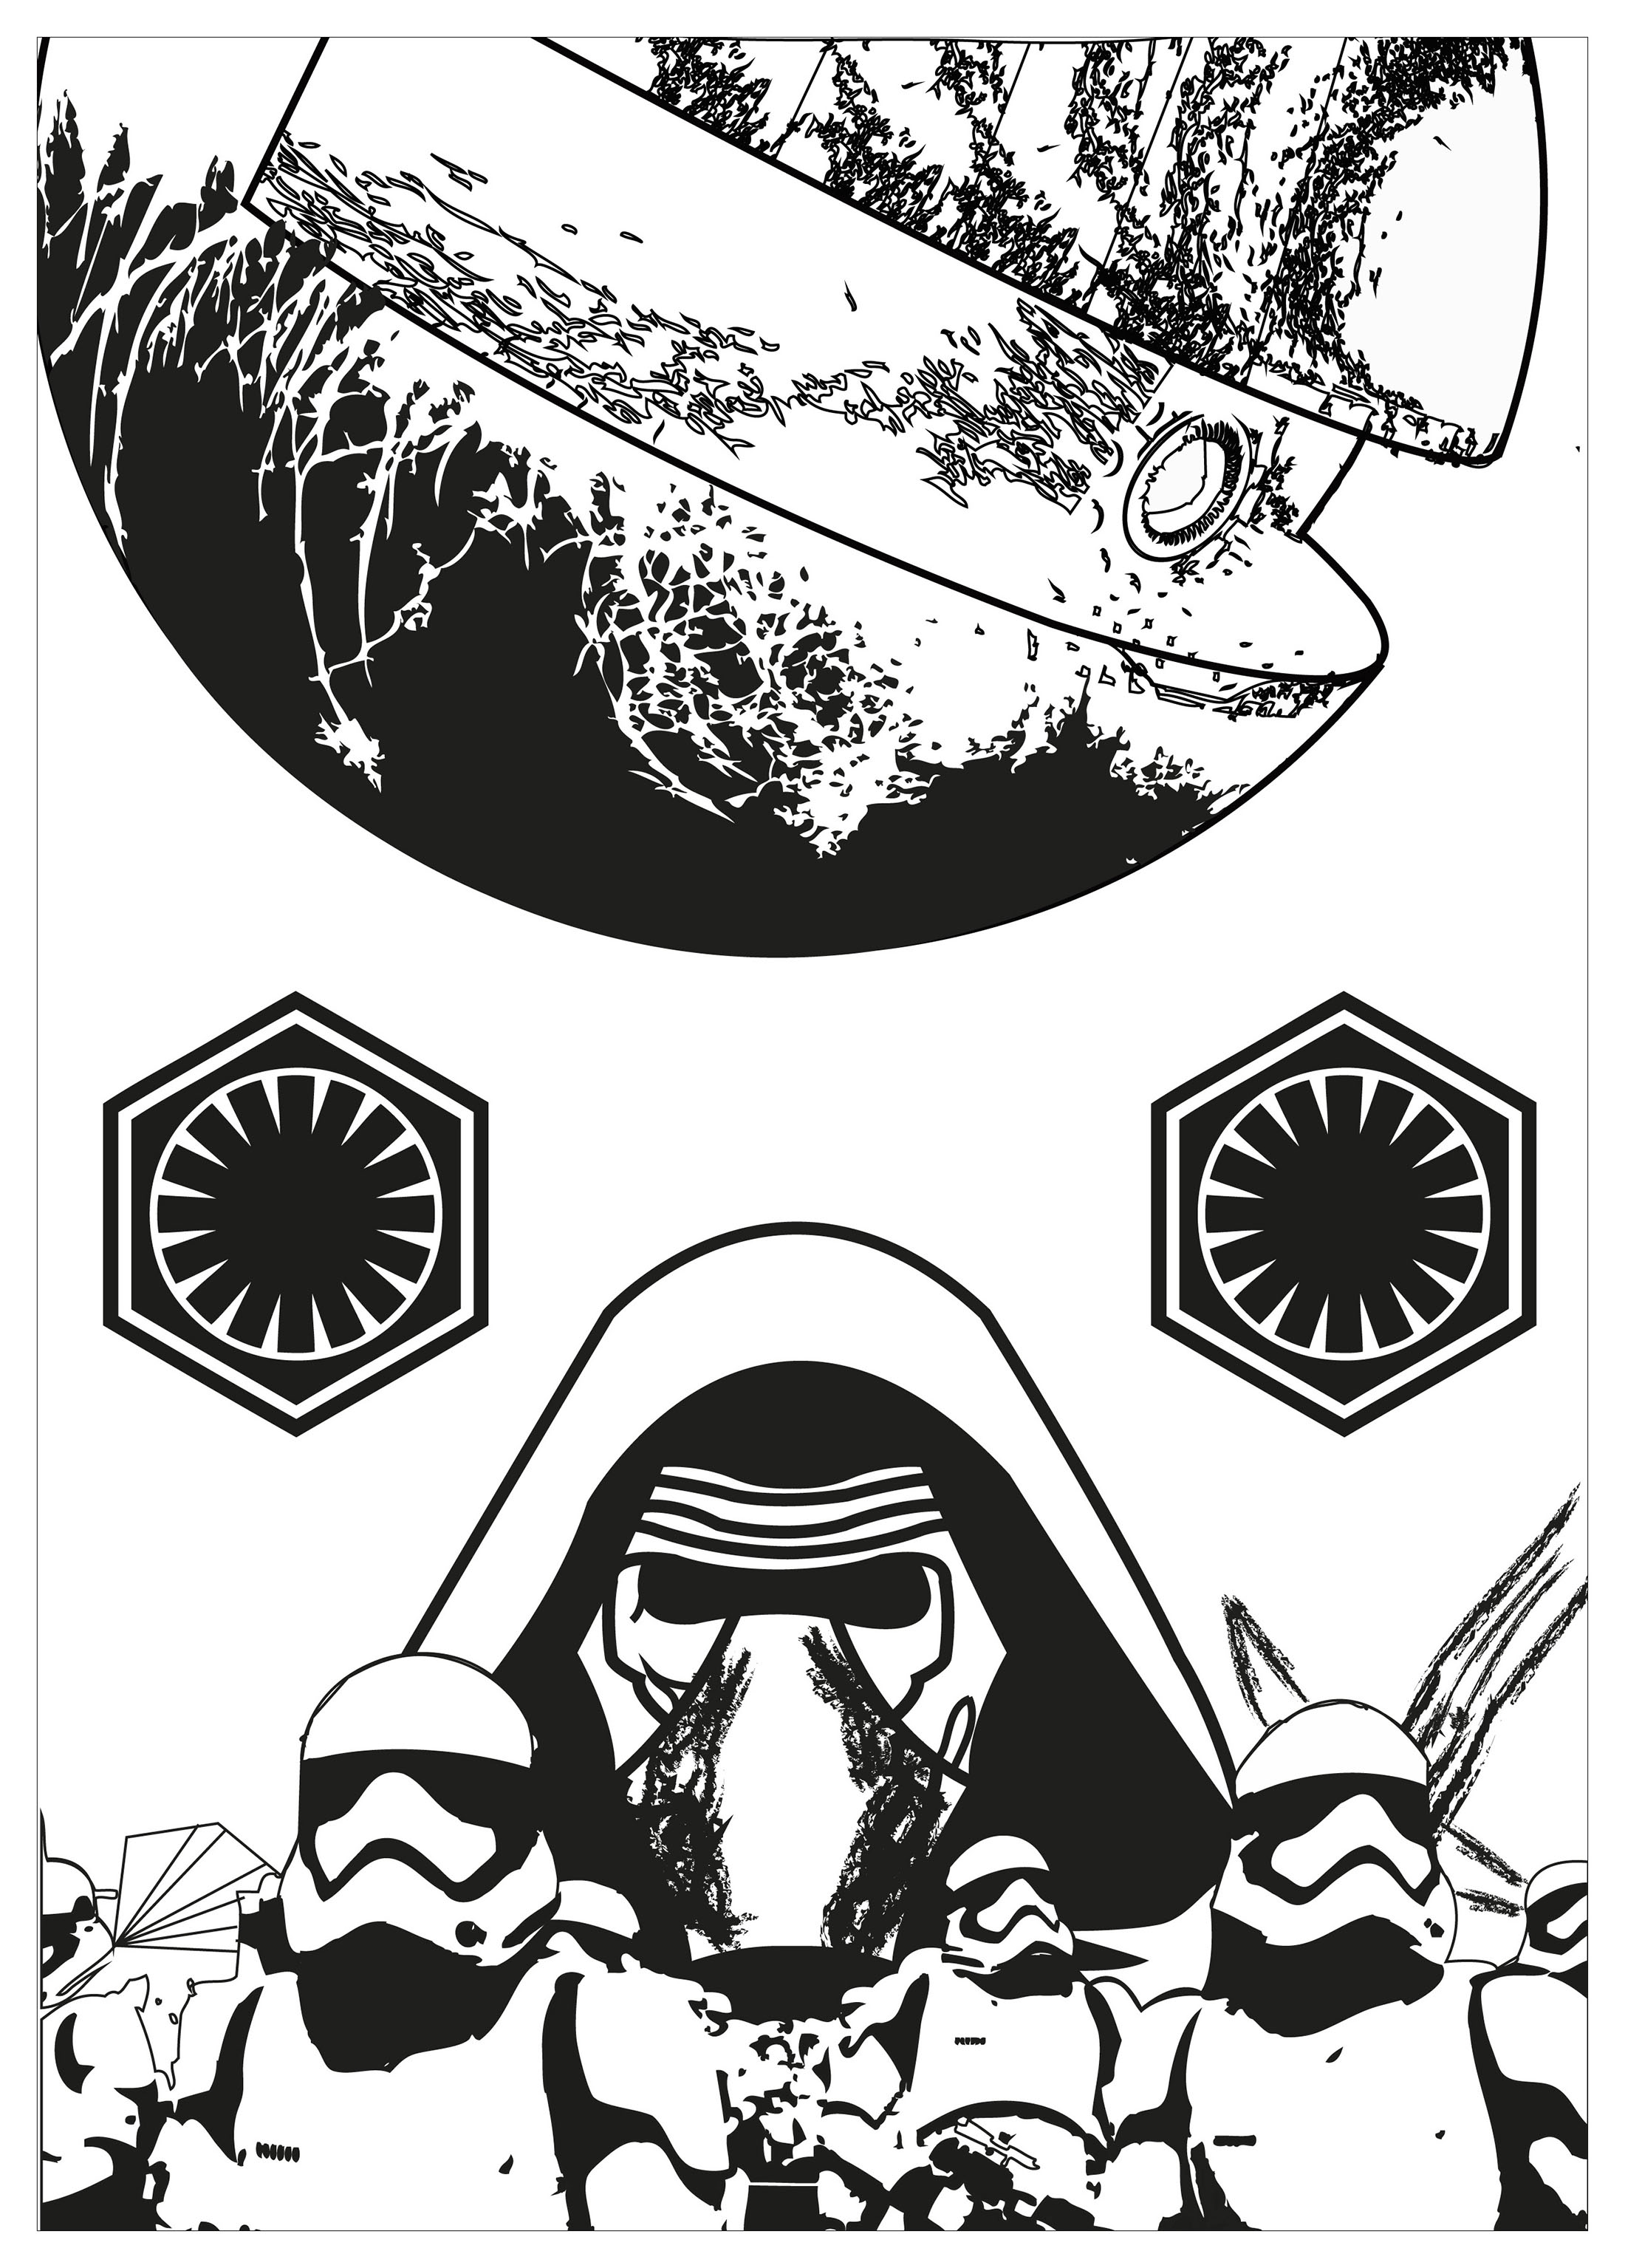 Star wars kylo ren Movies Coloring pages for adults JustColor